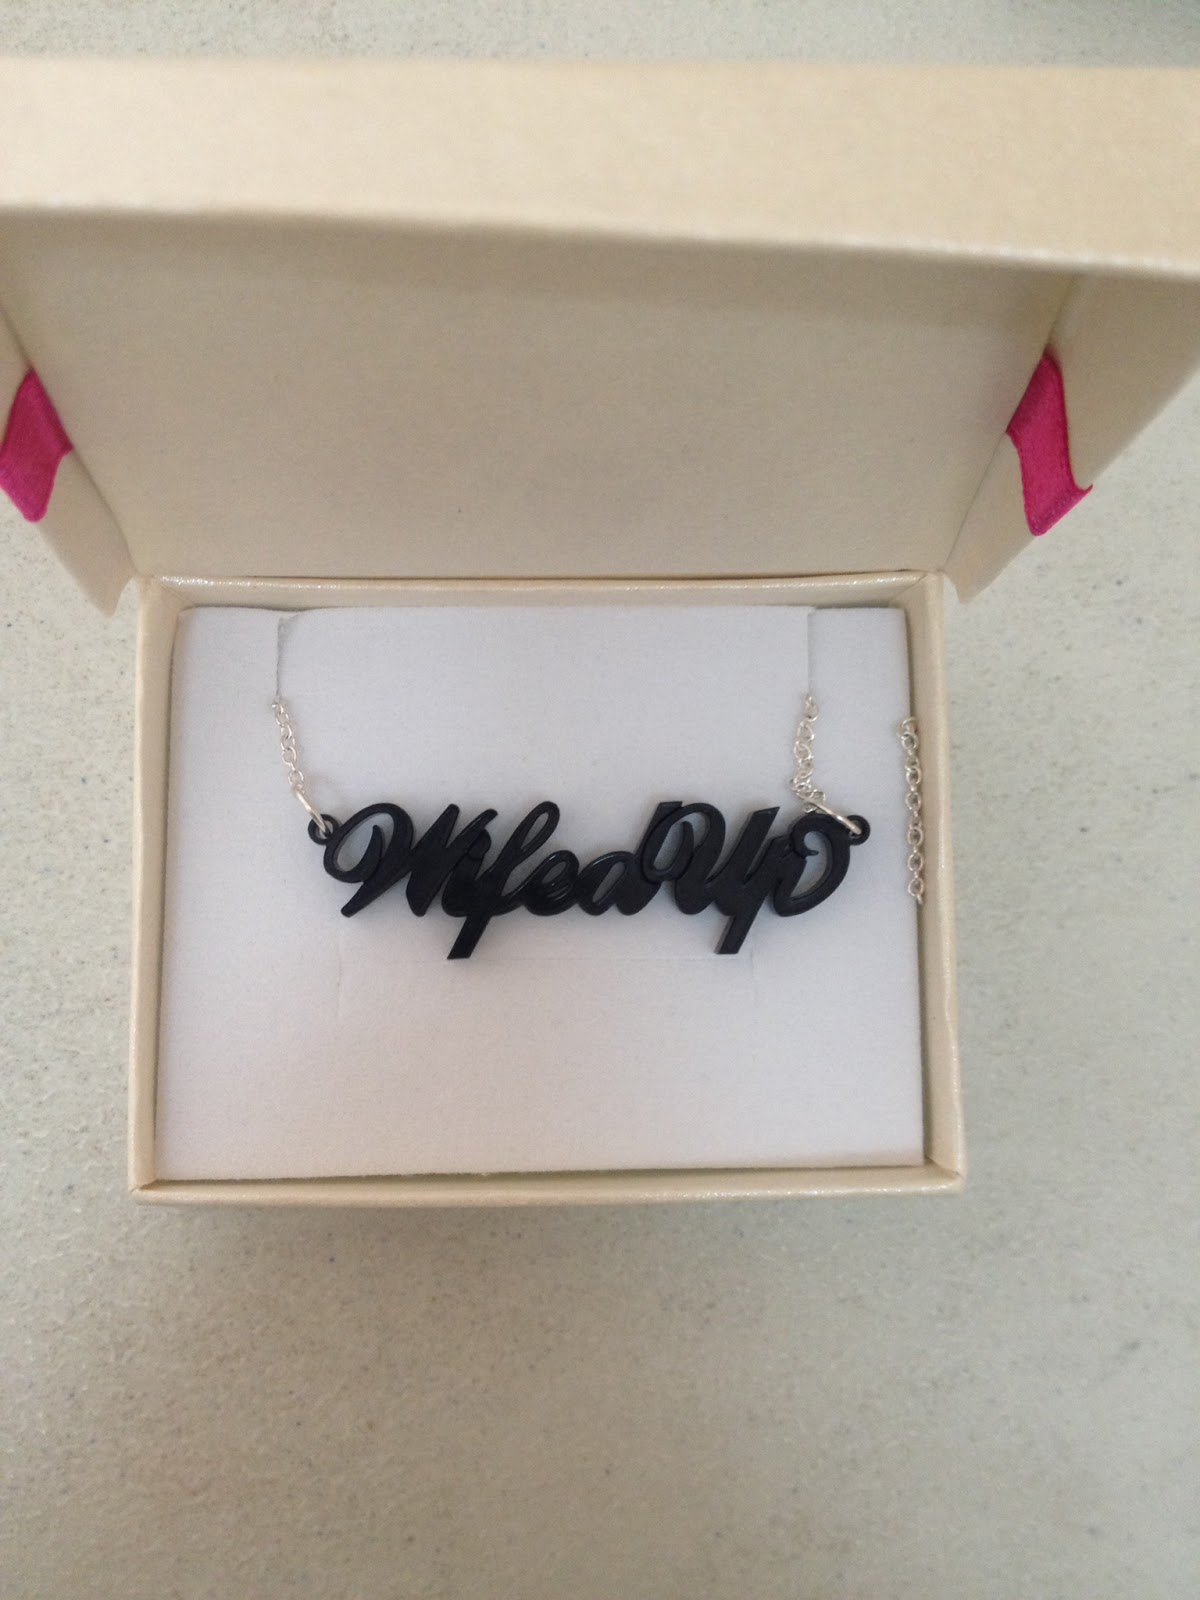 WifedUp Acrylic Name Necklace